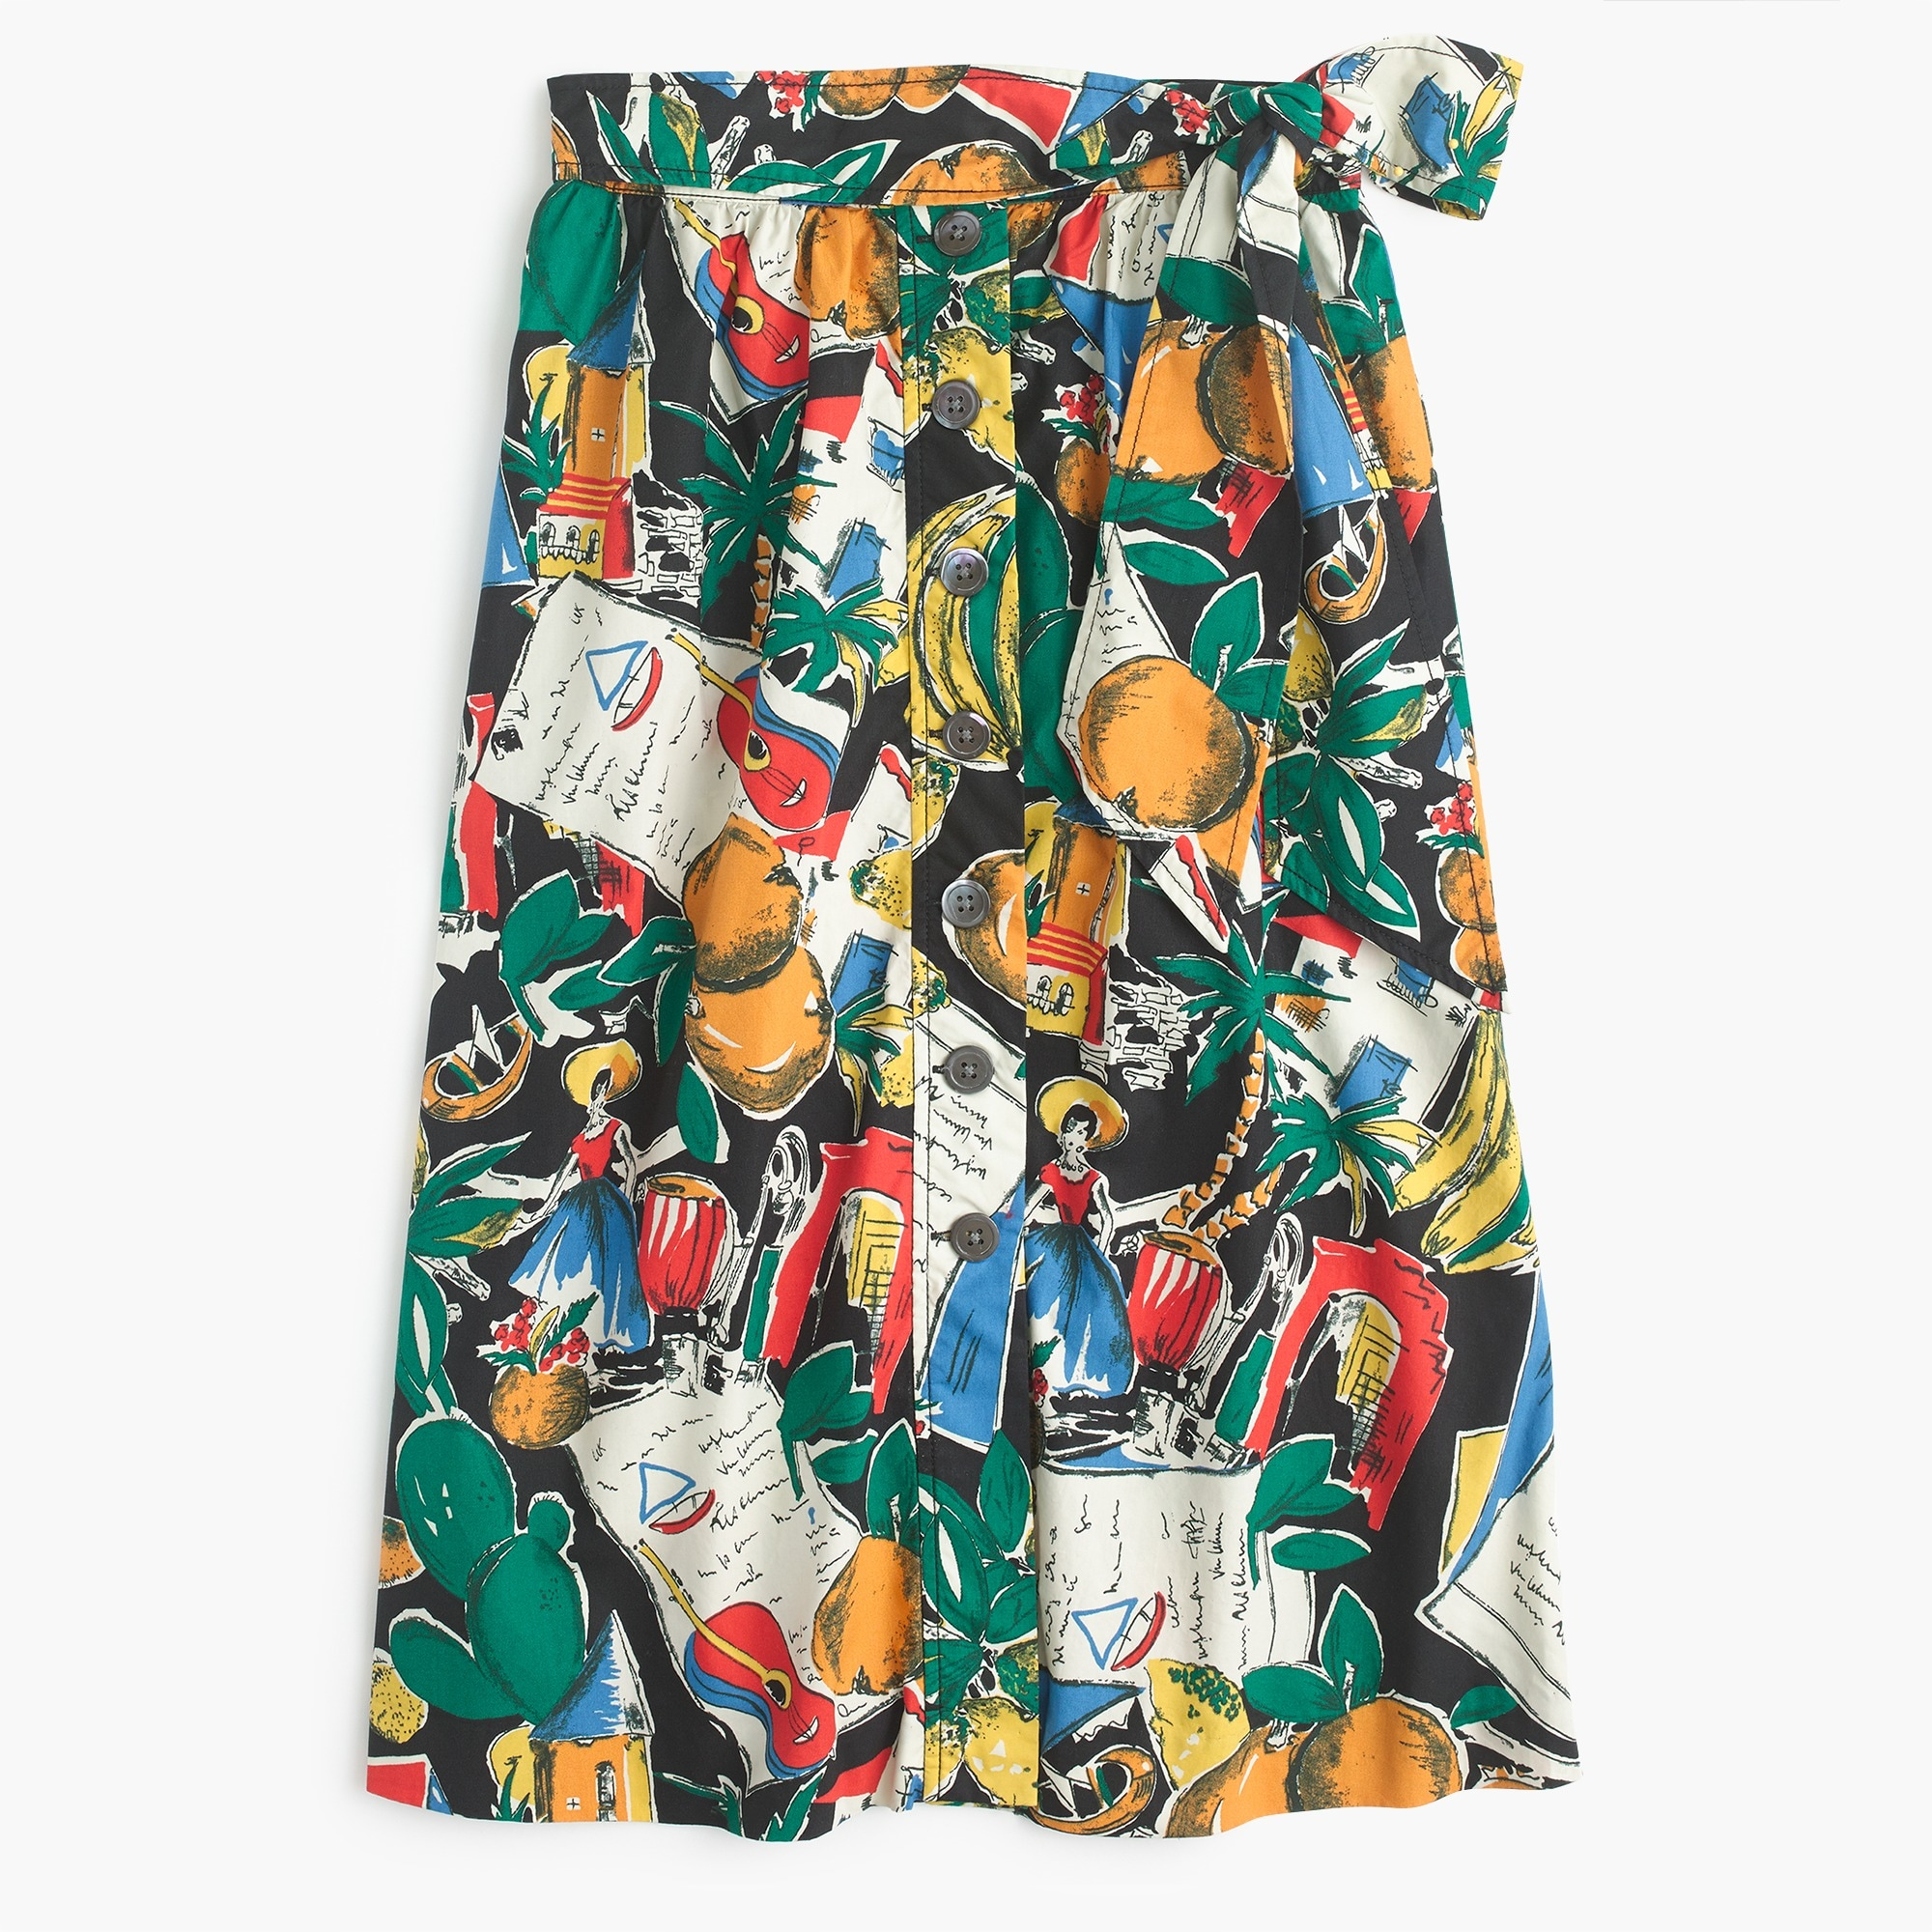 A-line button-up skirt in postcard print